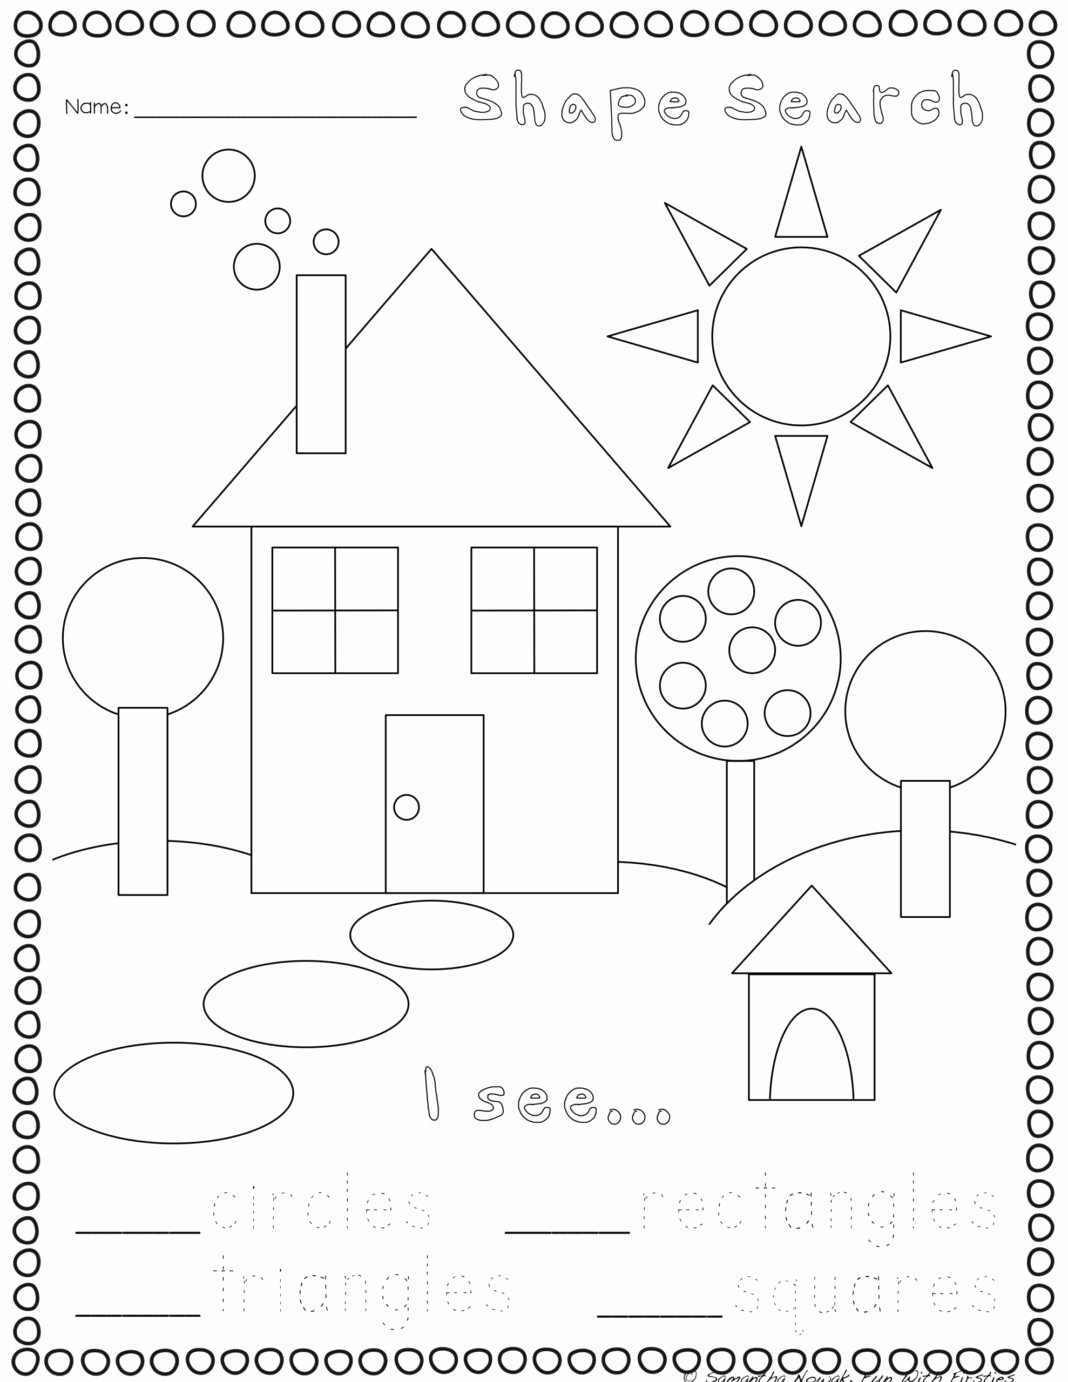 Shapes Worksheets for Preschoolers top Worksheets Print Go Geometry Practice Worksheets Shapes